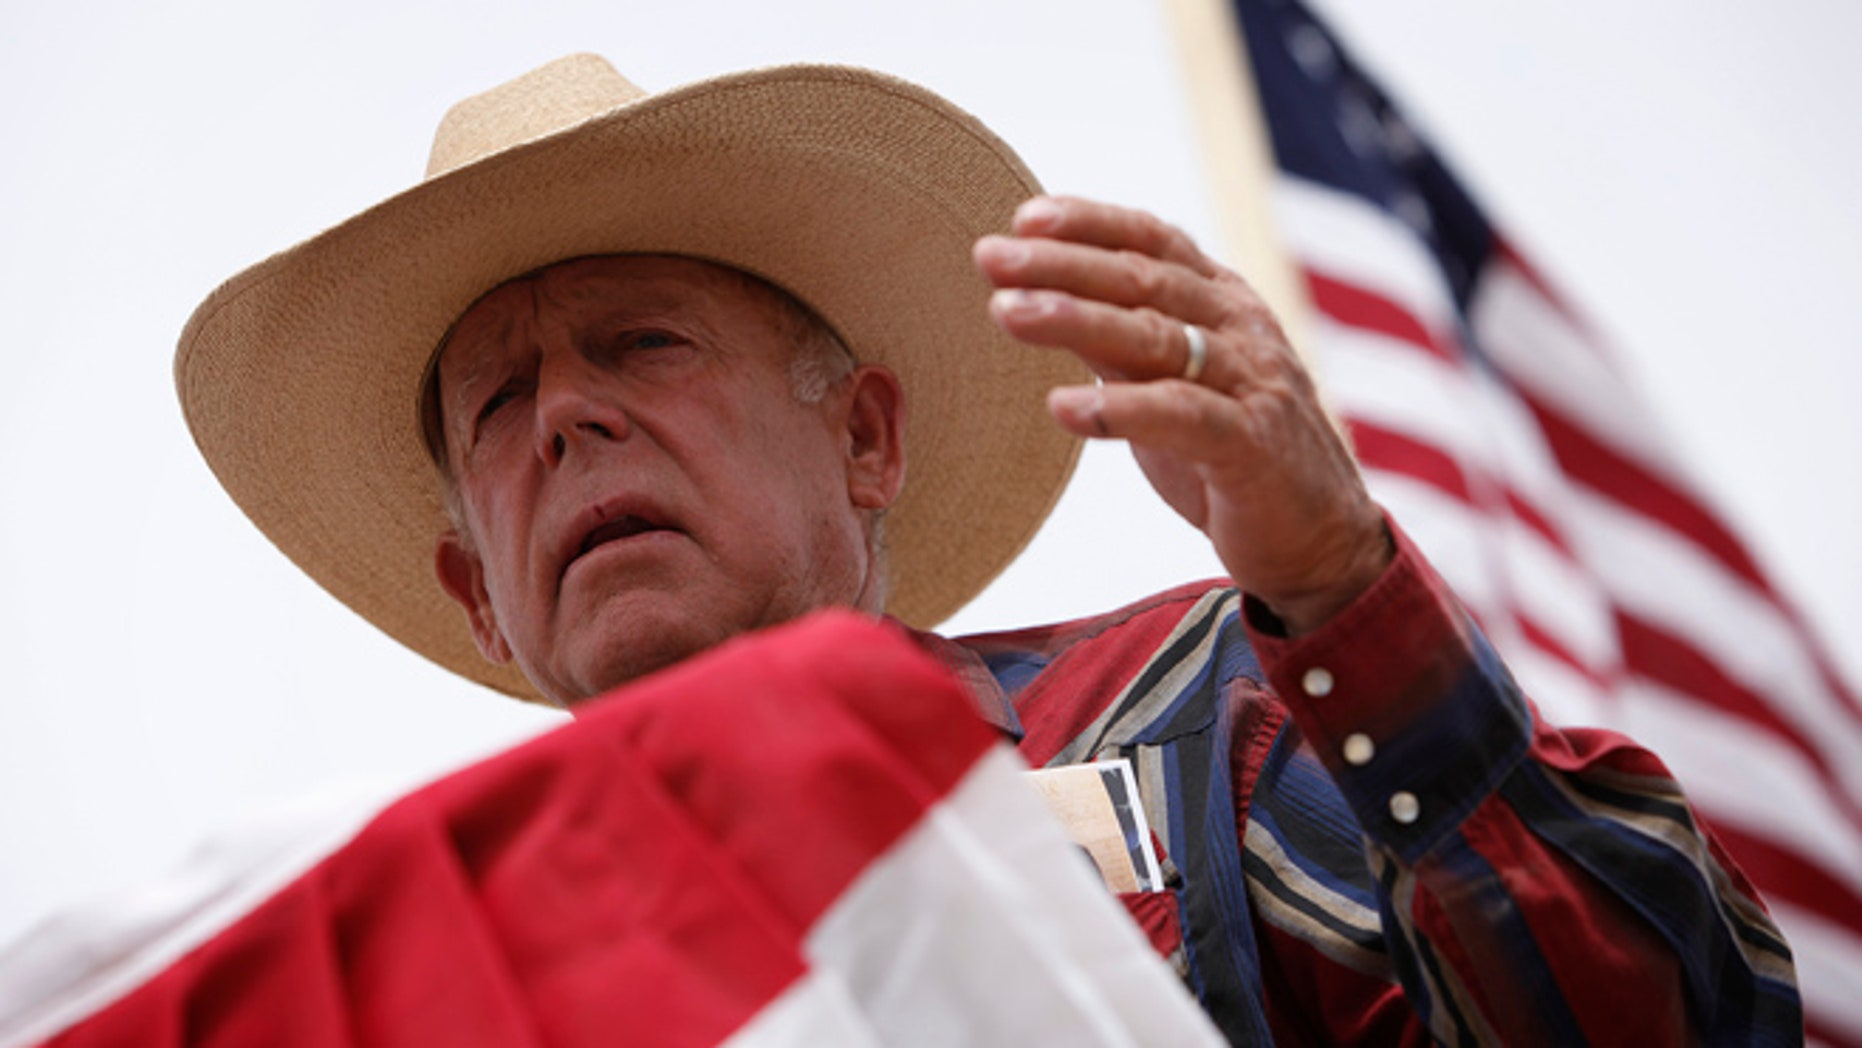 April 18, 2014: Rancher Cliven Bundy speaks at a protest camp near Bunkerville, Nev.